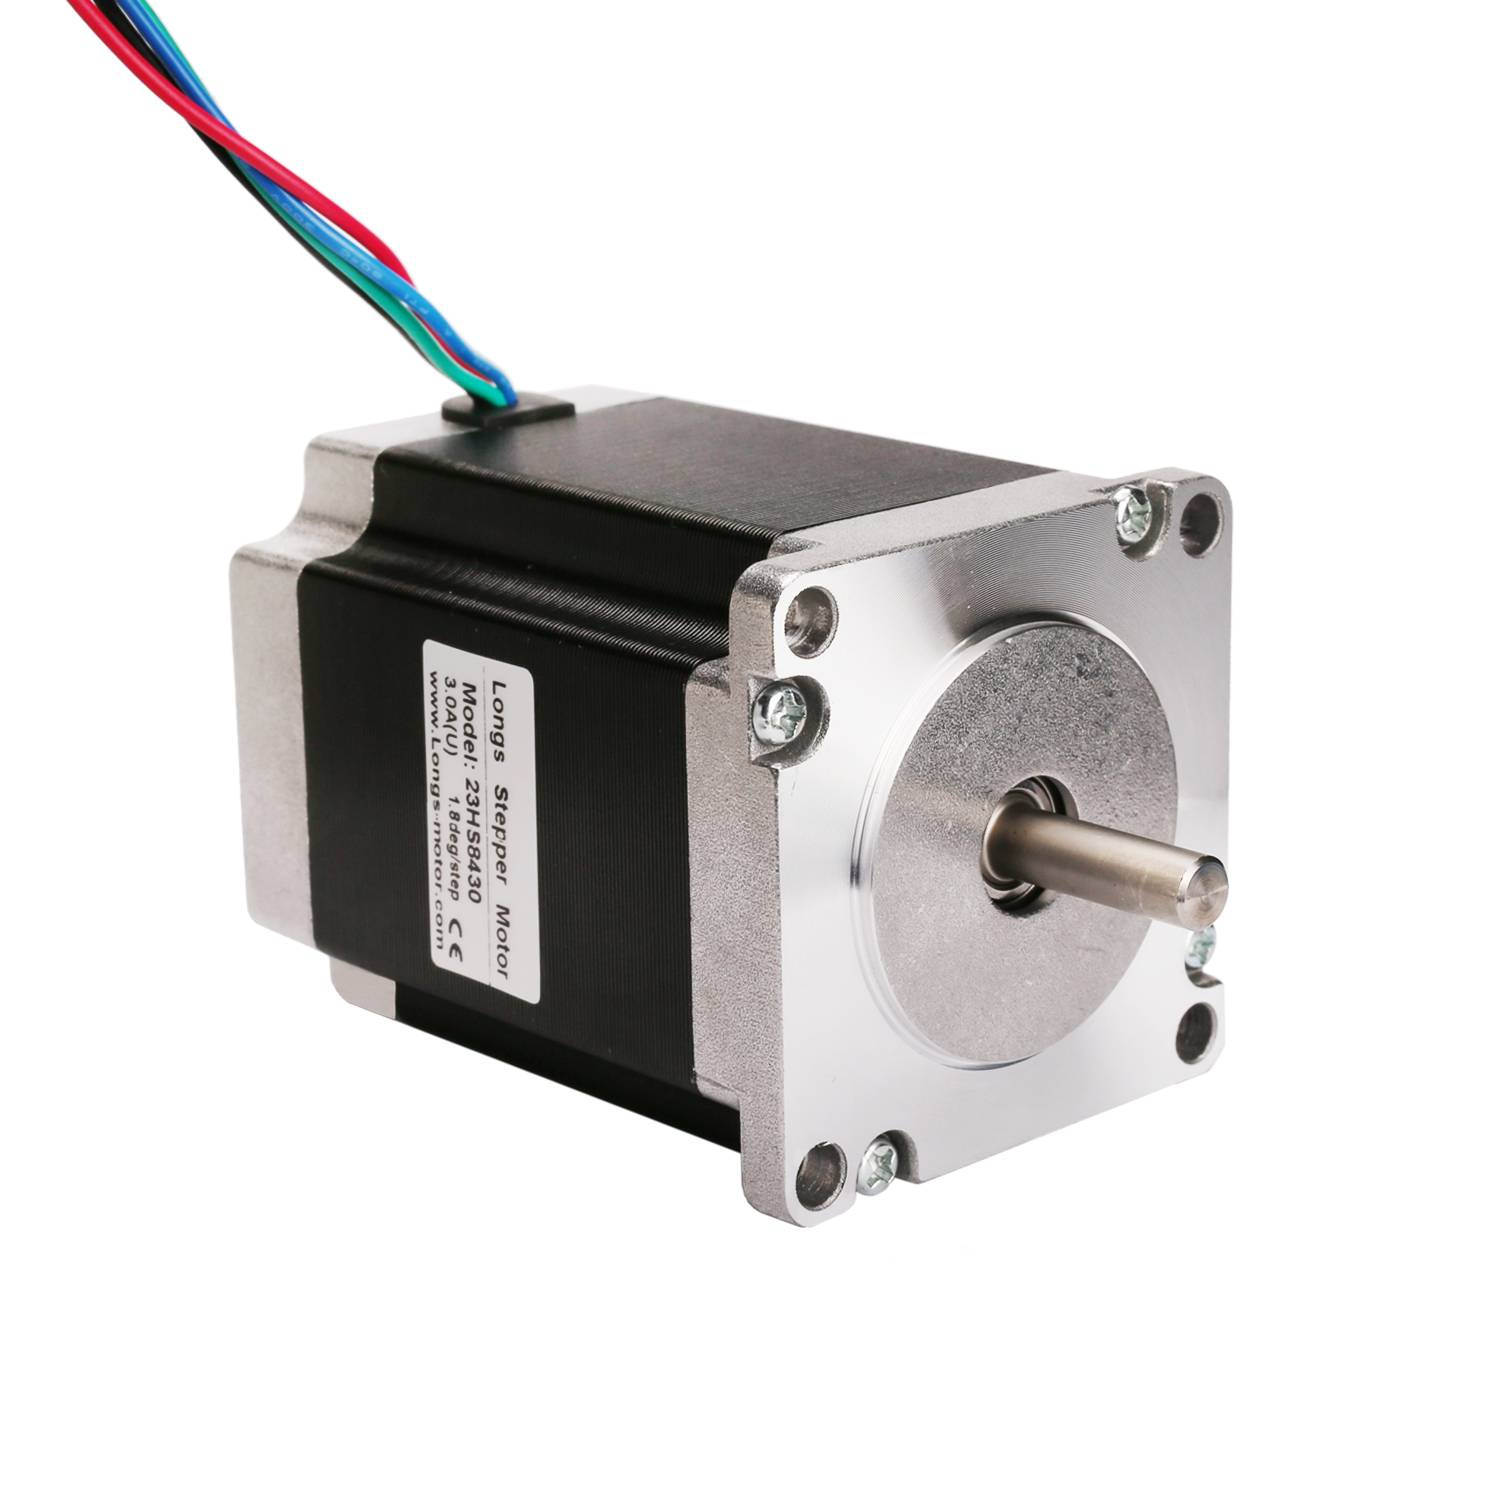 HYBRID stepper motor-nema23HS Featured Image